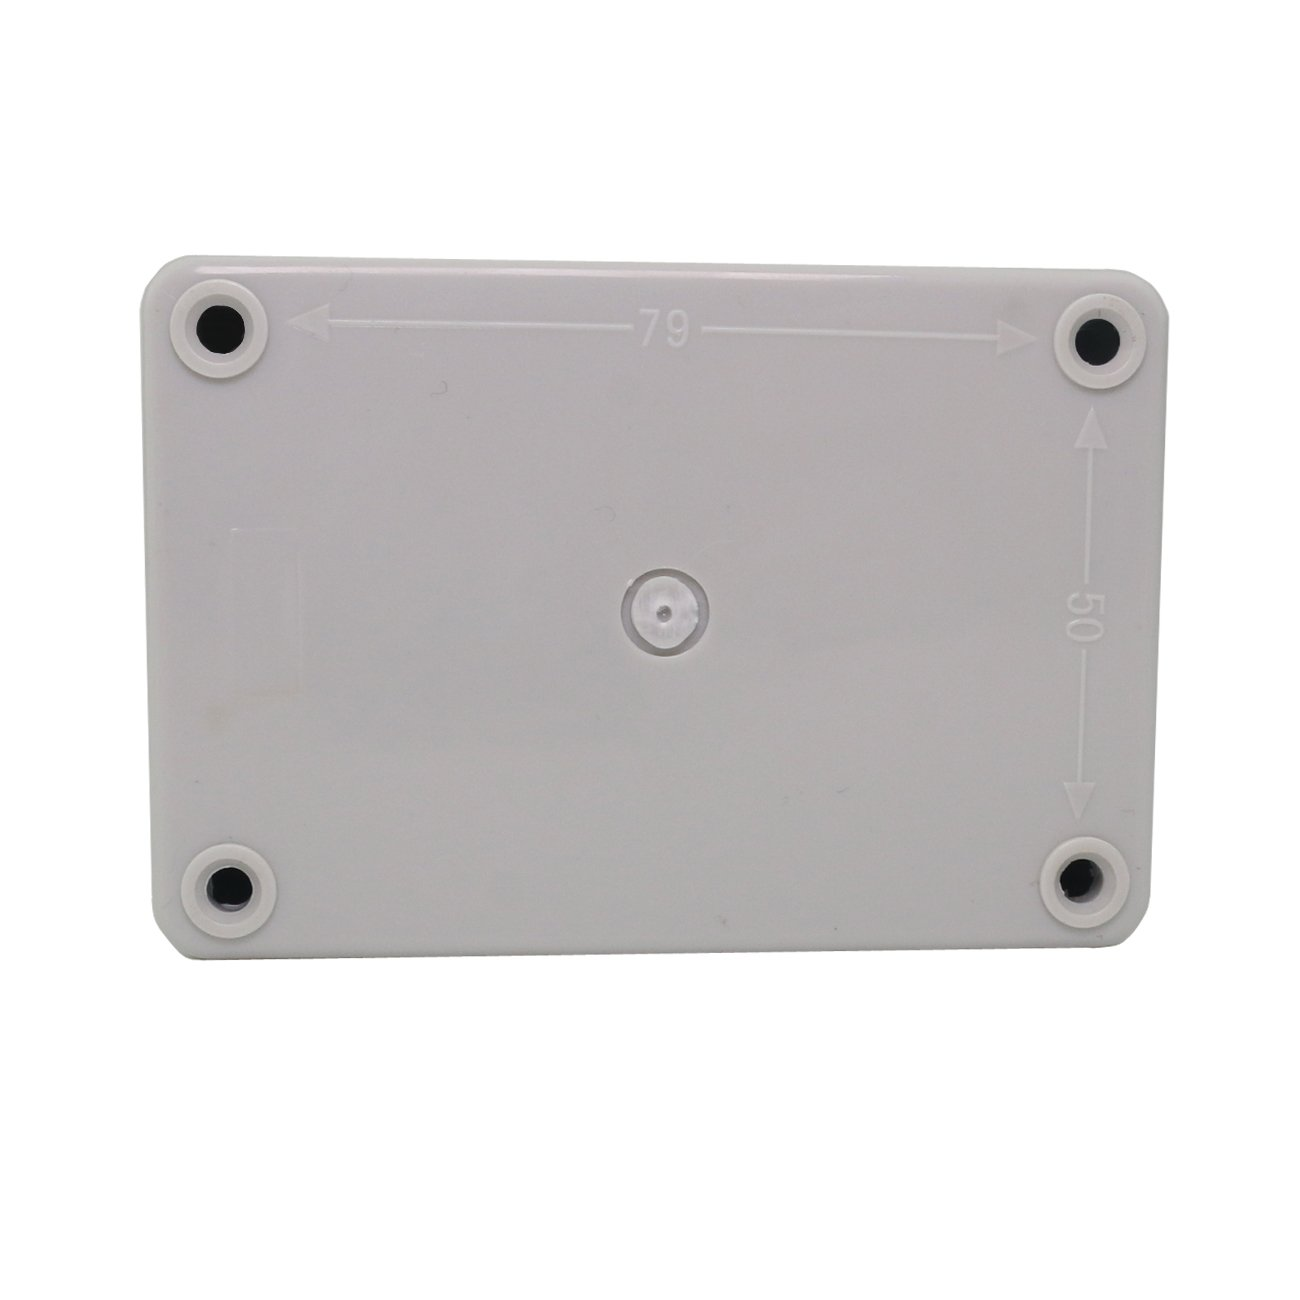 7.2x 3.2x 2.8 Ogrmar Plastic Dustproof IP65 Junction Box DIY Case Enclosure